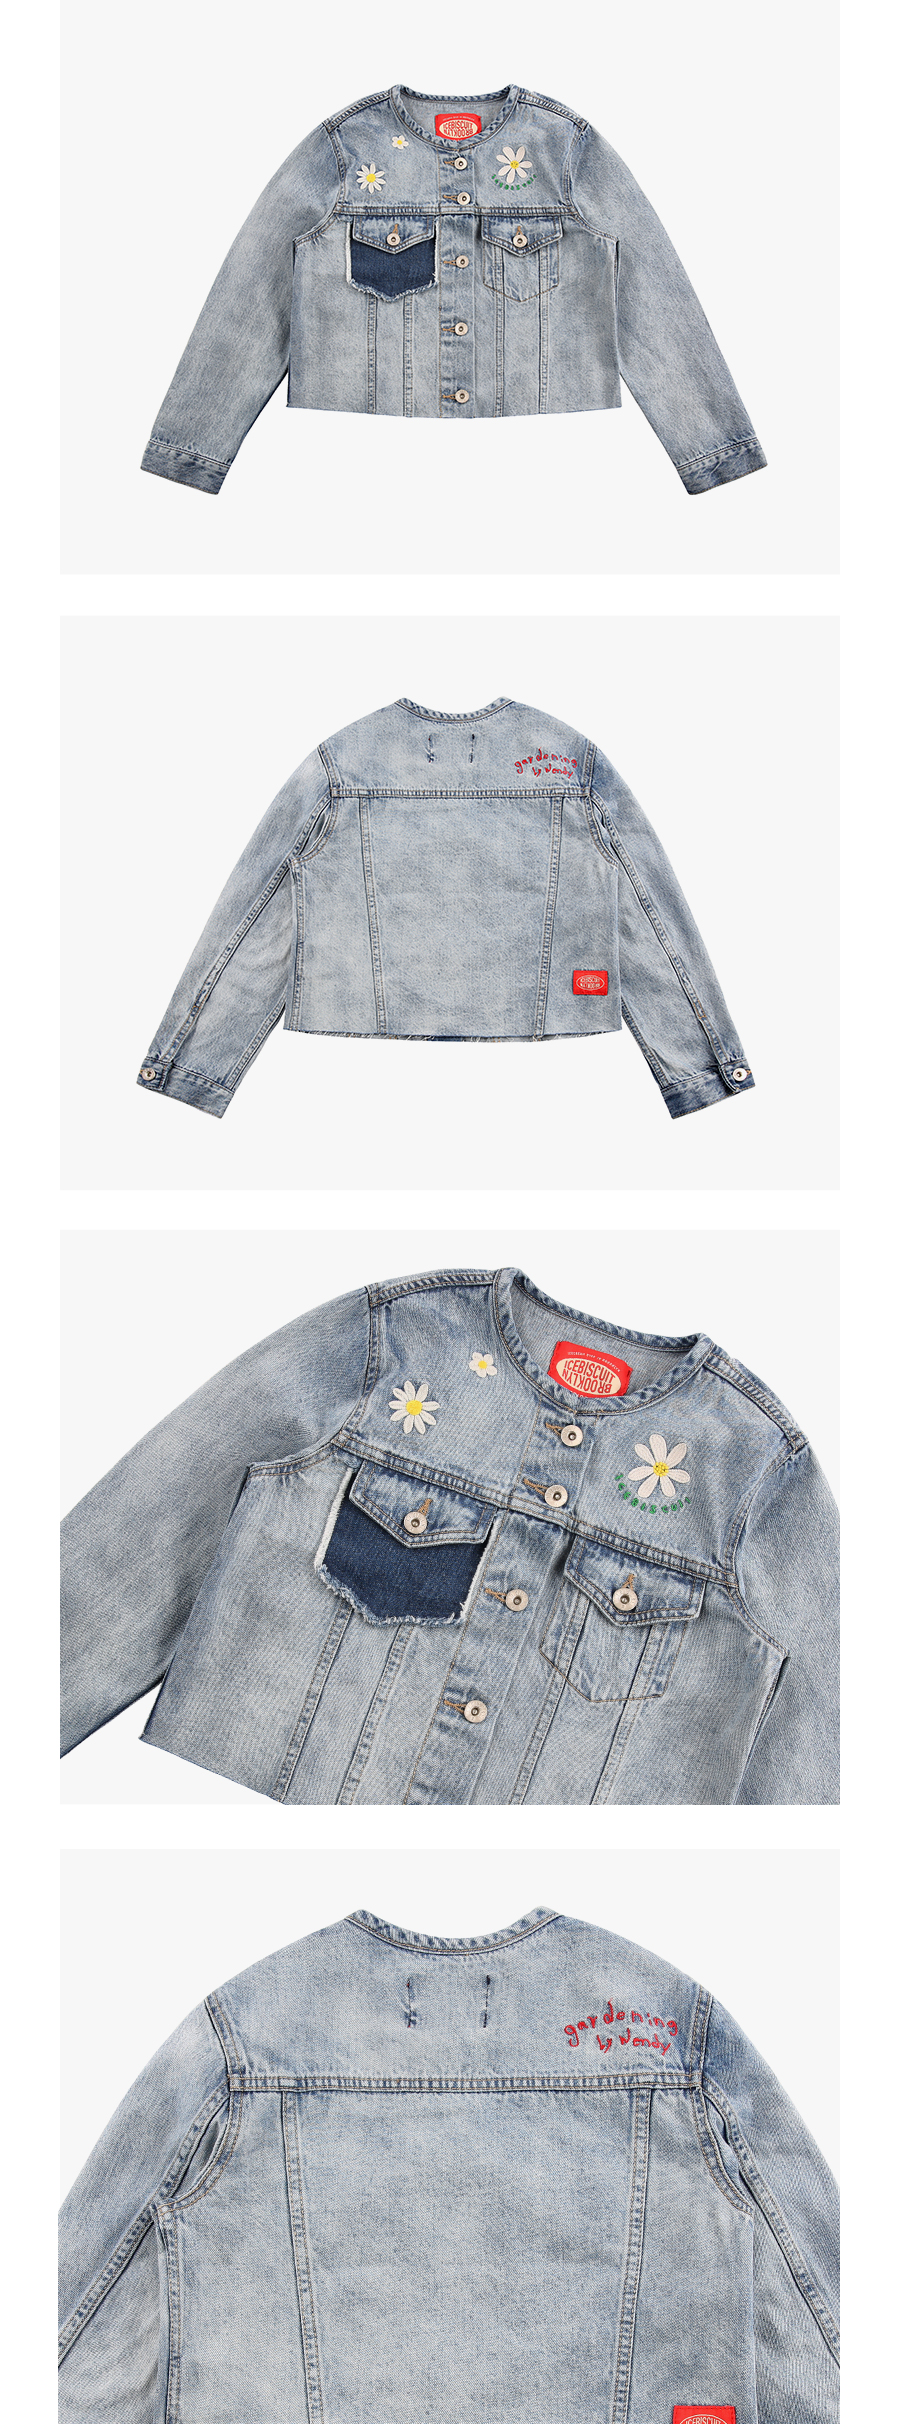 Daisy color block crop denim jacket 상세 이미지